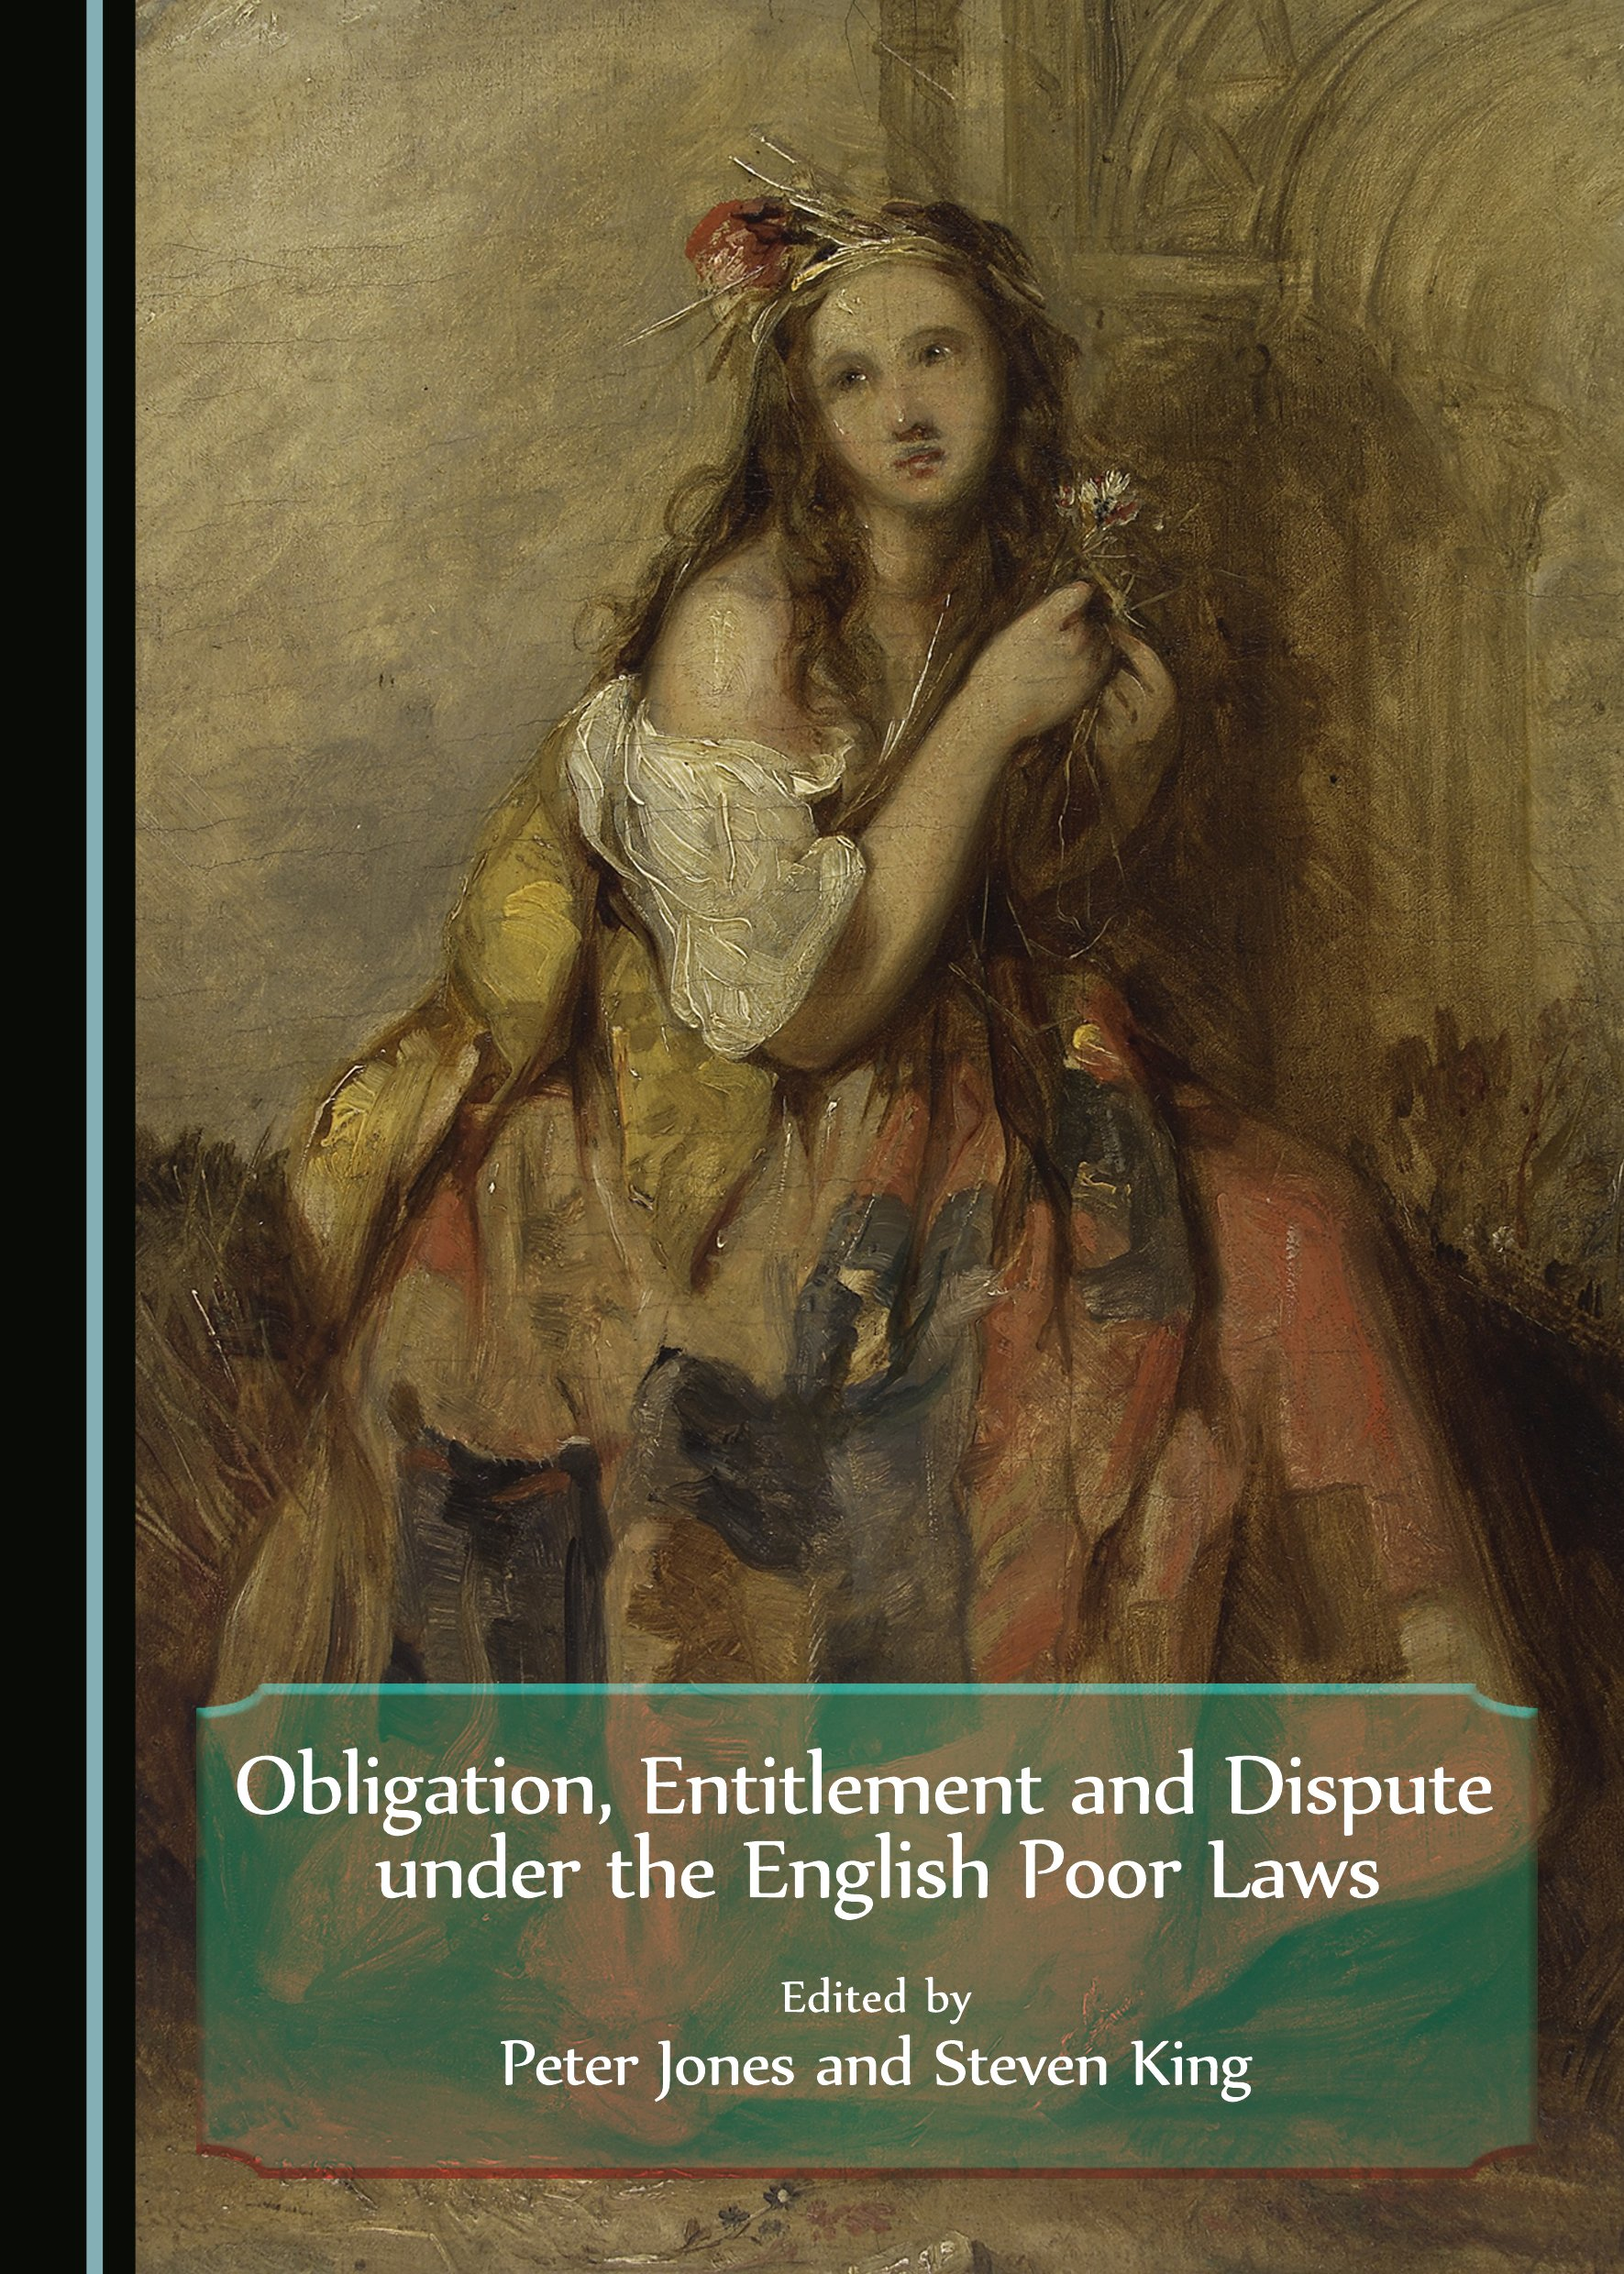 Obligation, Entitlement and Dispute under the English Poor Laws